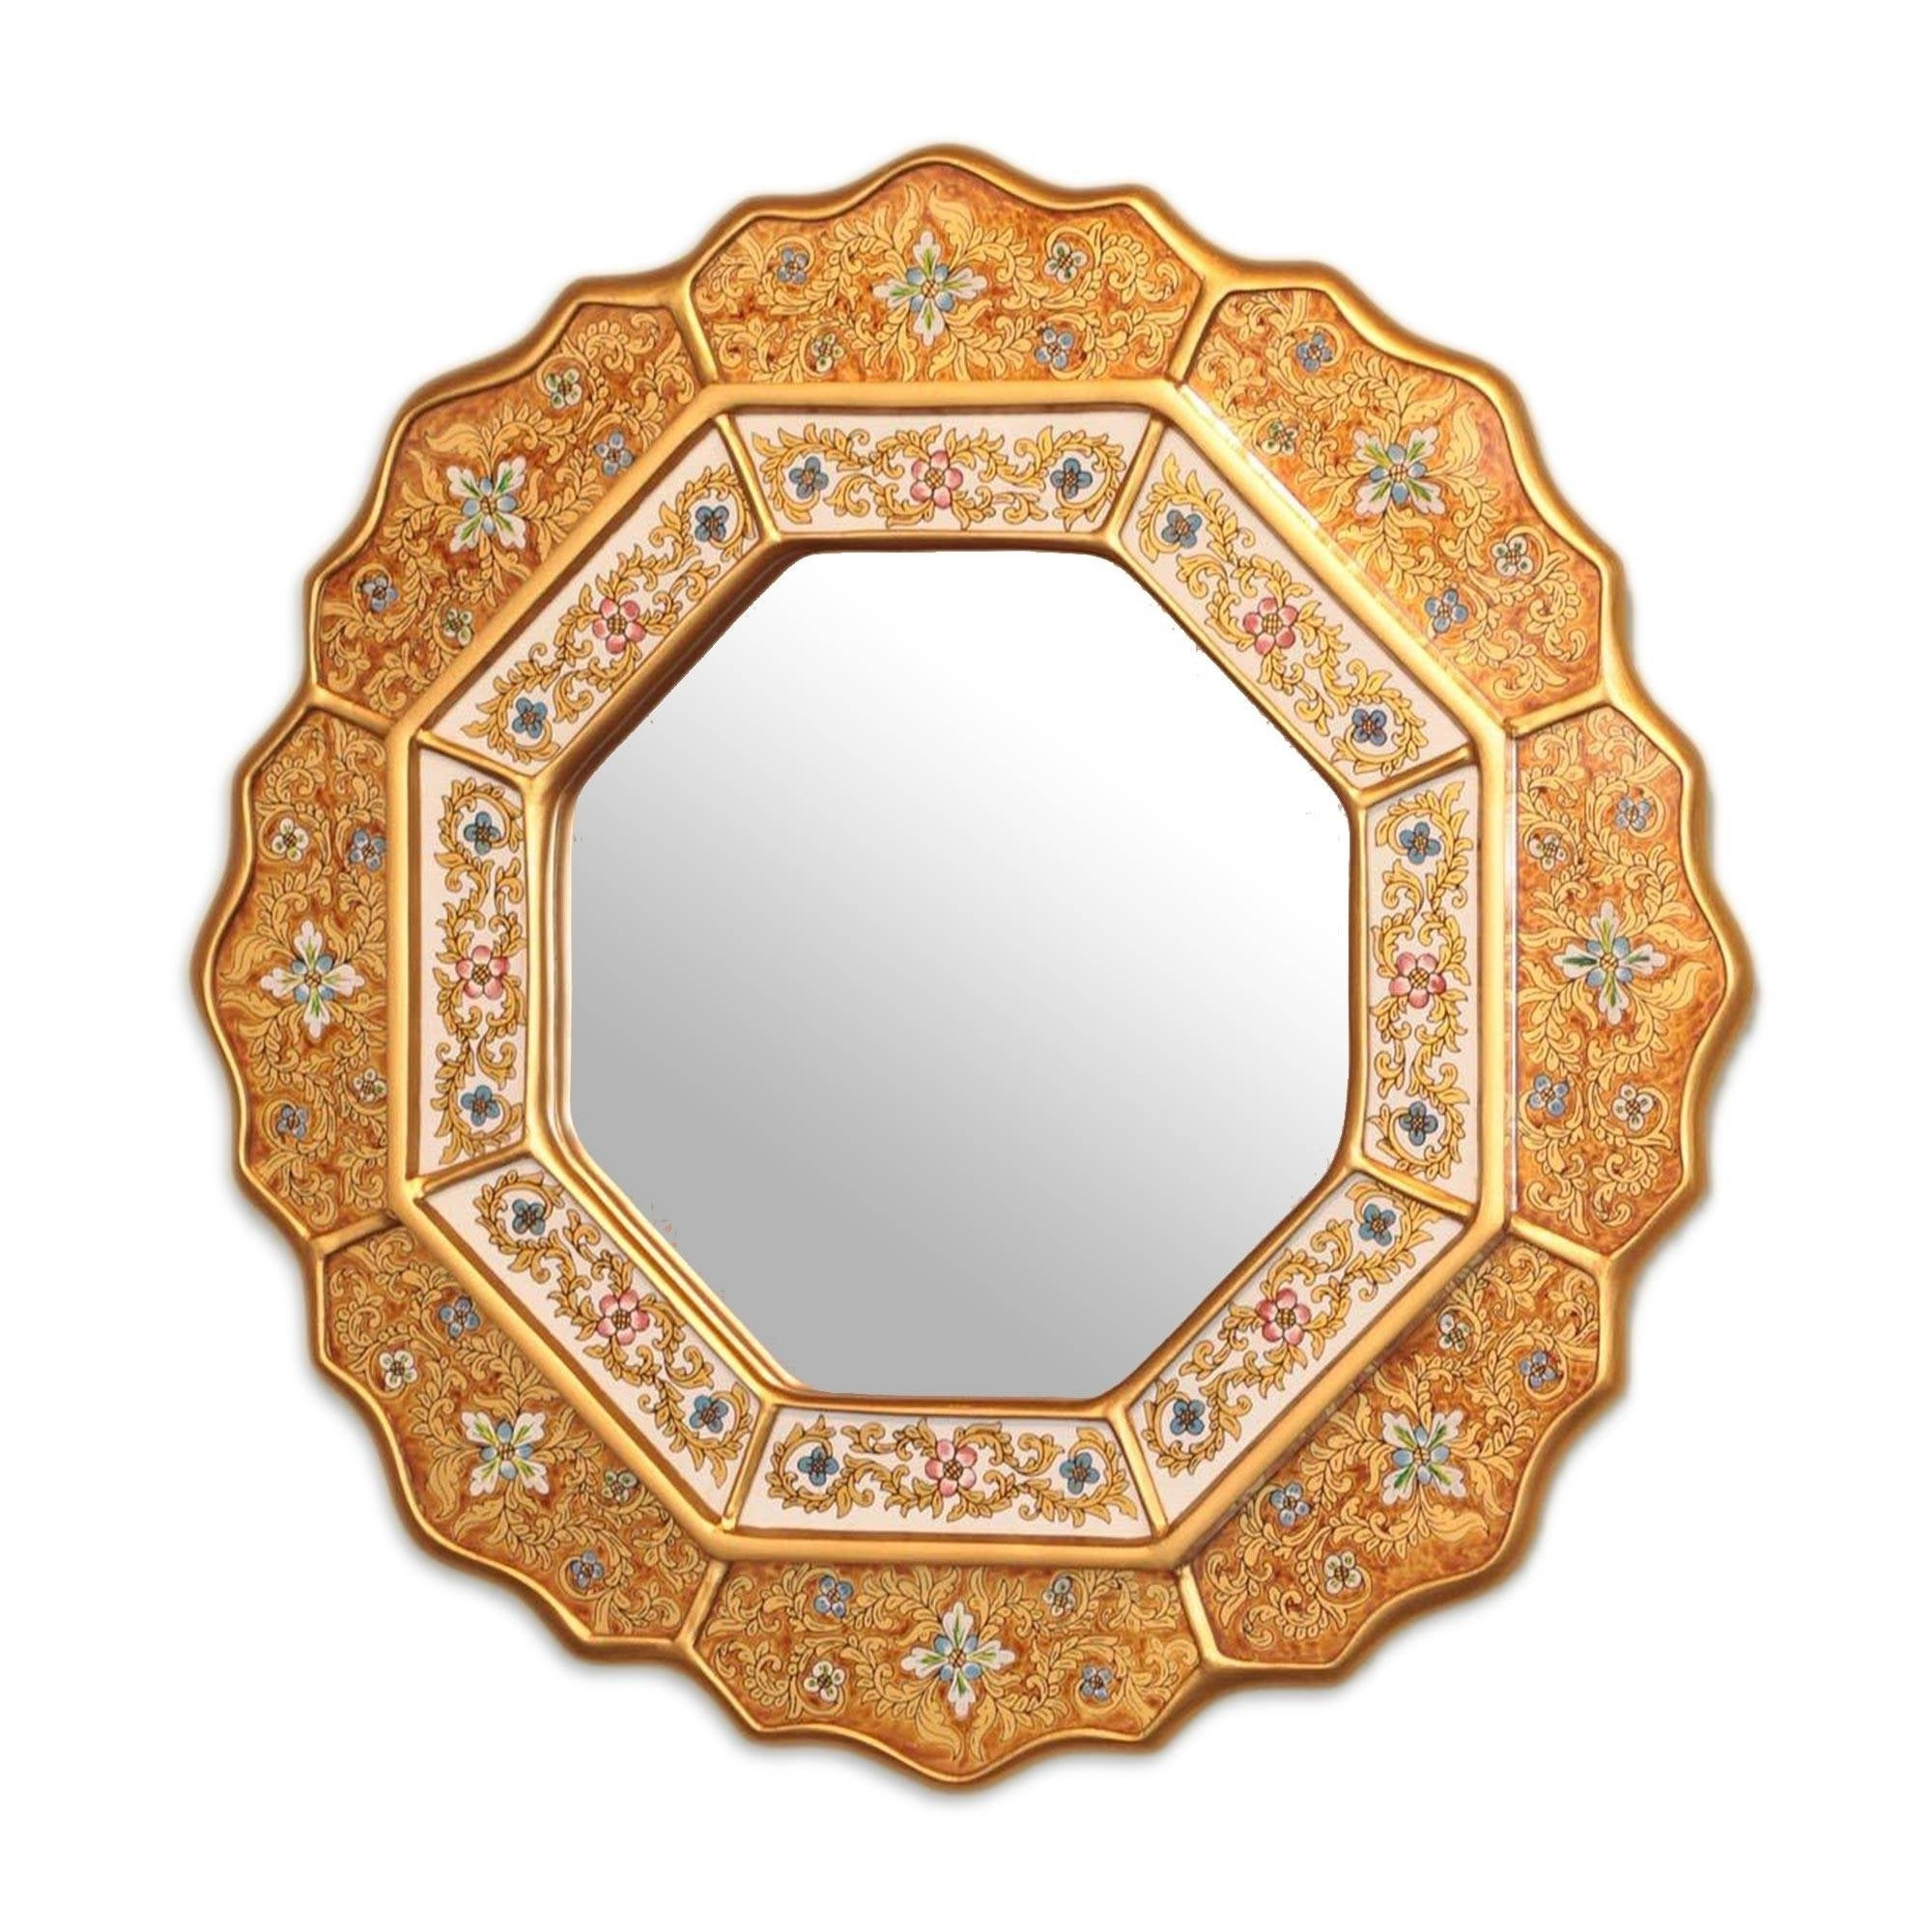 Most Current Golden Star Artisan Handmade Decor Hand Painted Floral Gold Blue Red Accent Hall Bedroom Bathroom Glass Wall Mirror (peru) For Hand Painted Wall Mirrors (View 20 of 20)